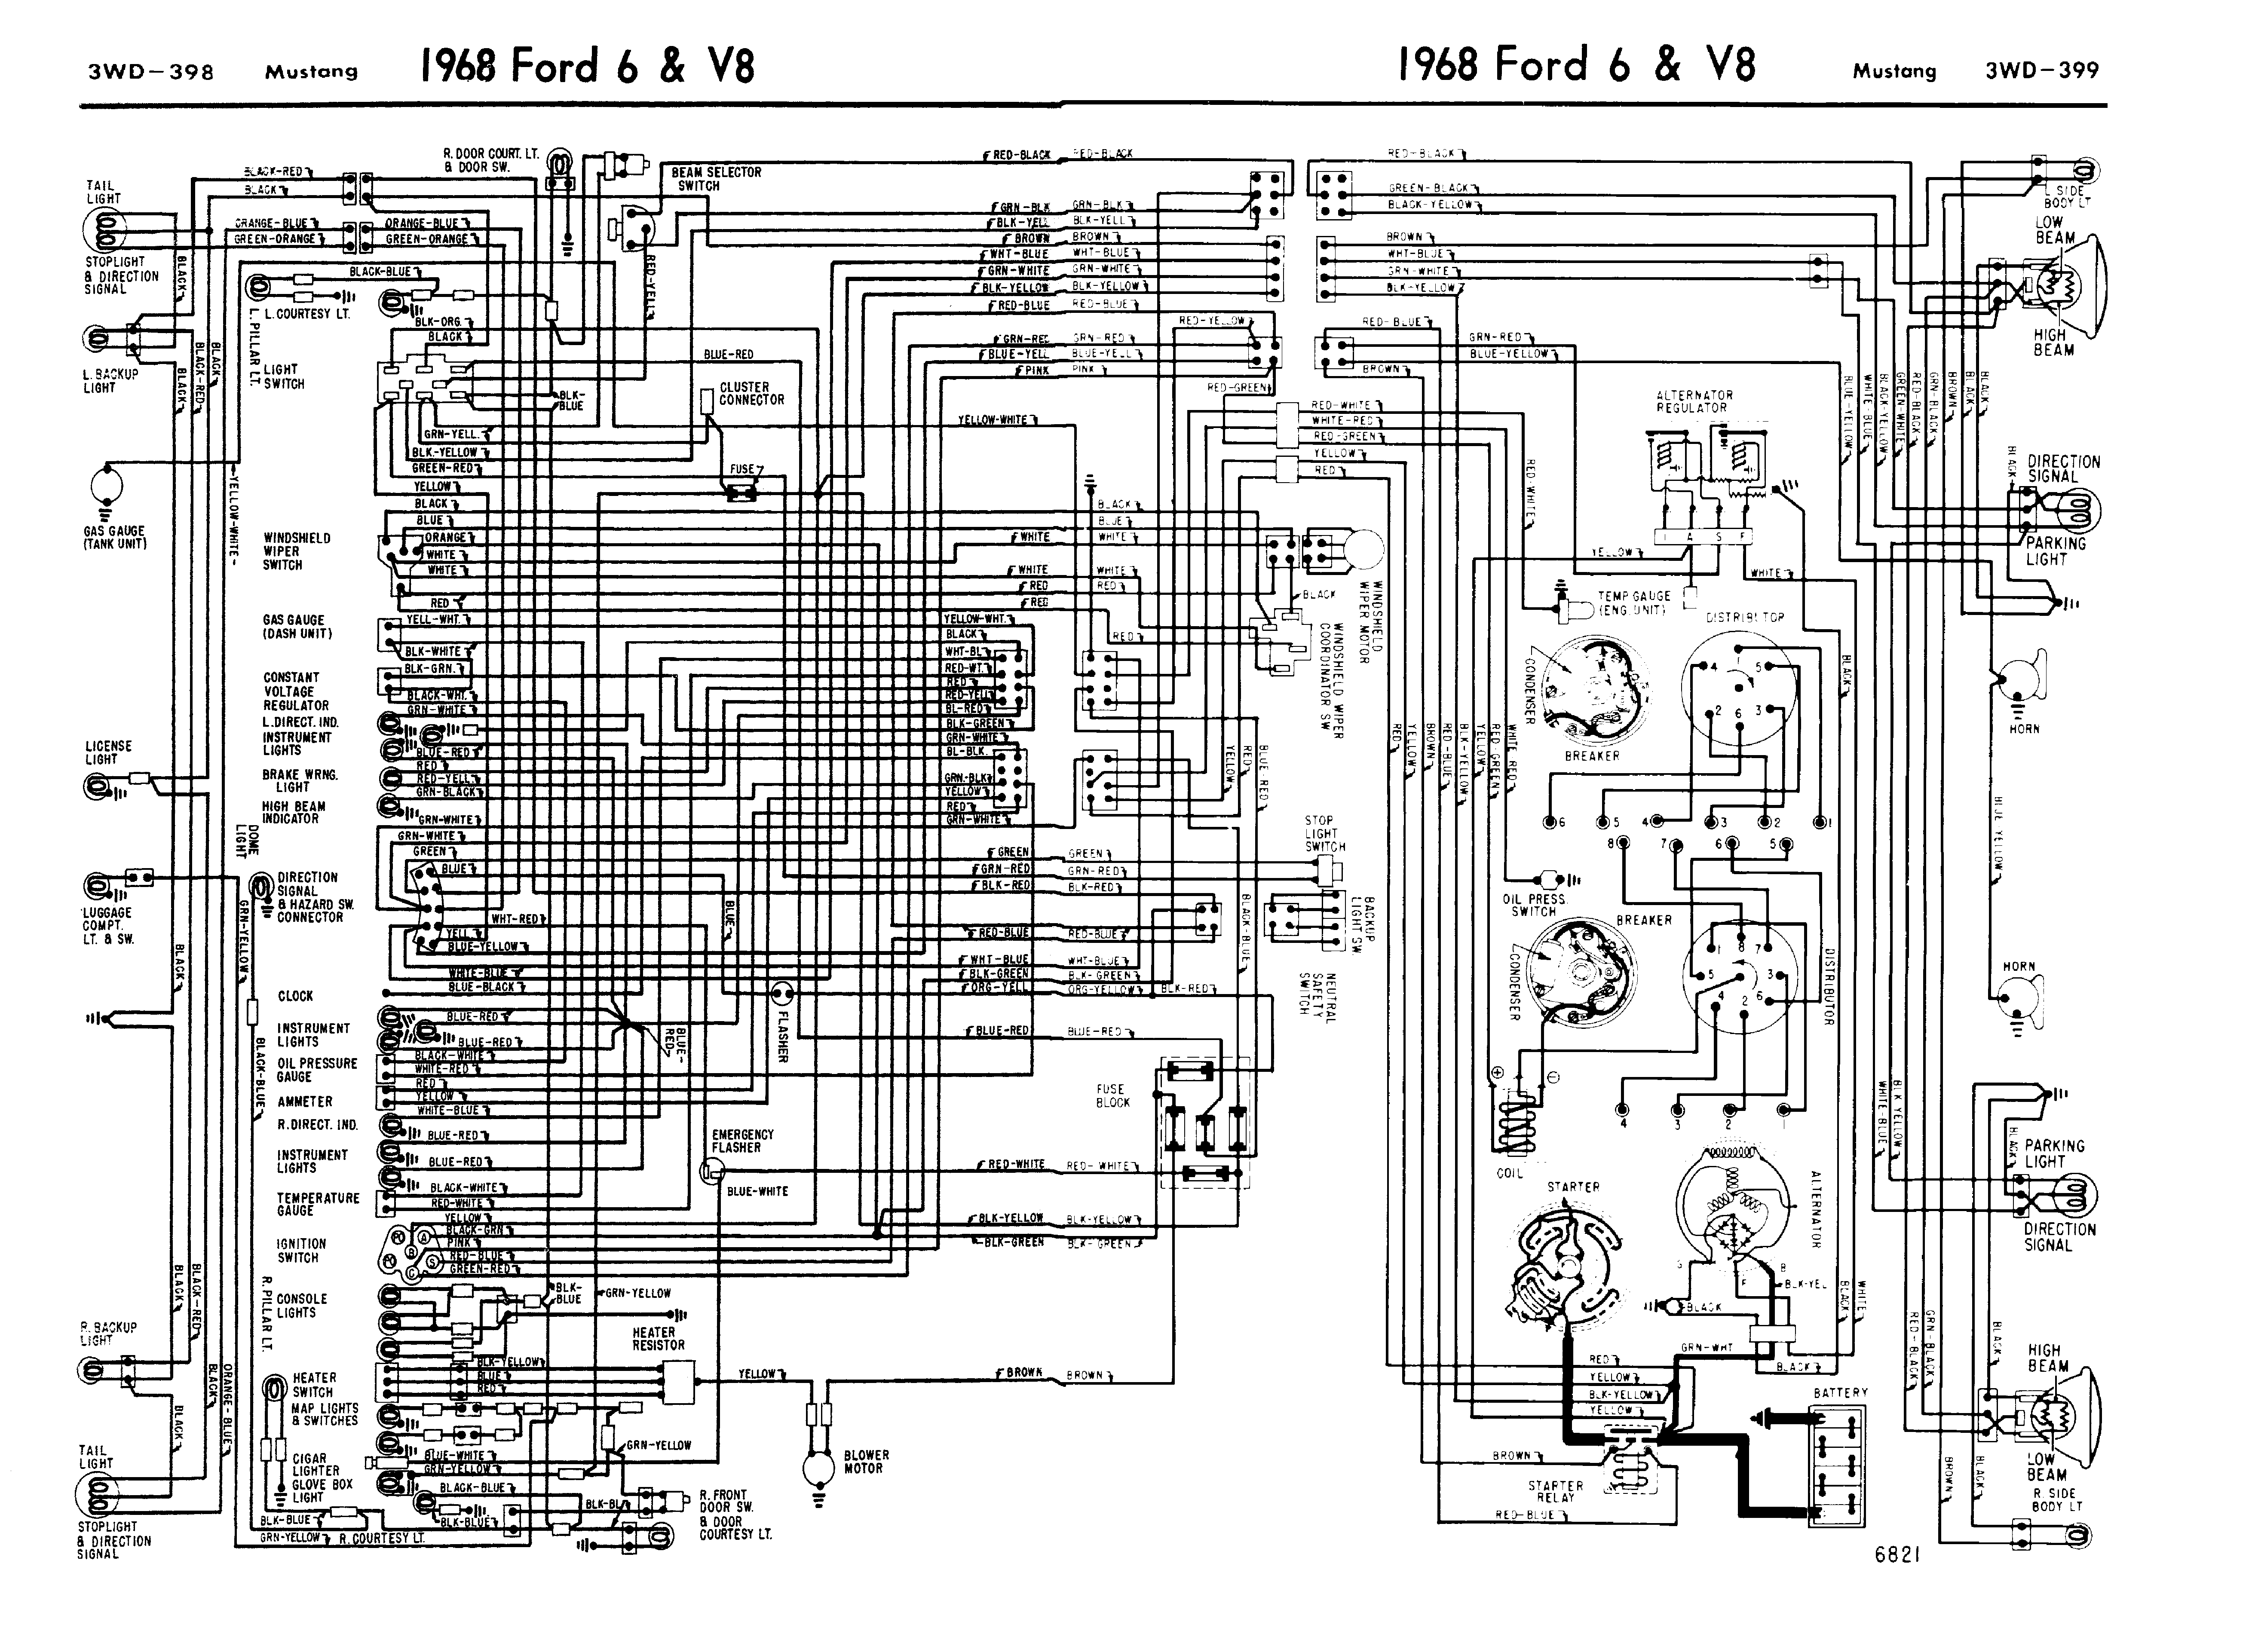 1968 mustang tach wiring diagram wiring library 1968 mustang steering wheel 1968 mustang tach wiring [ 5246 x 3844 Pixel ]